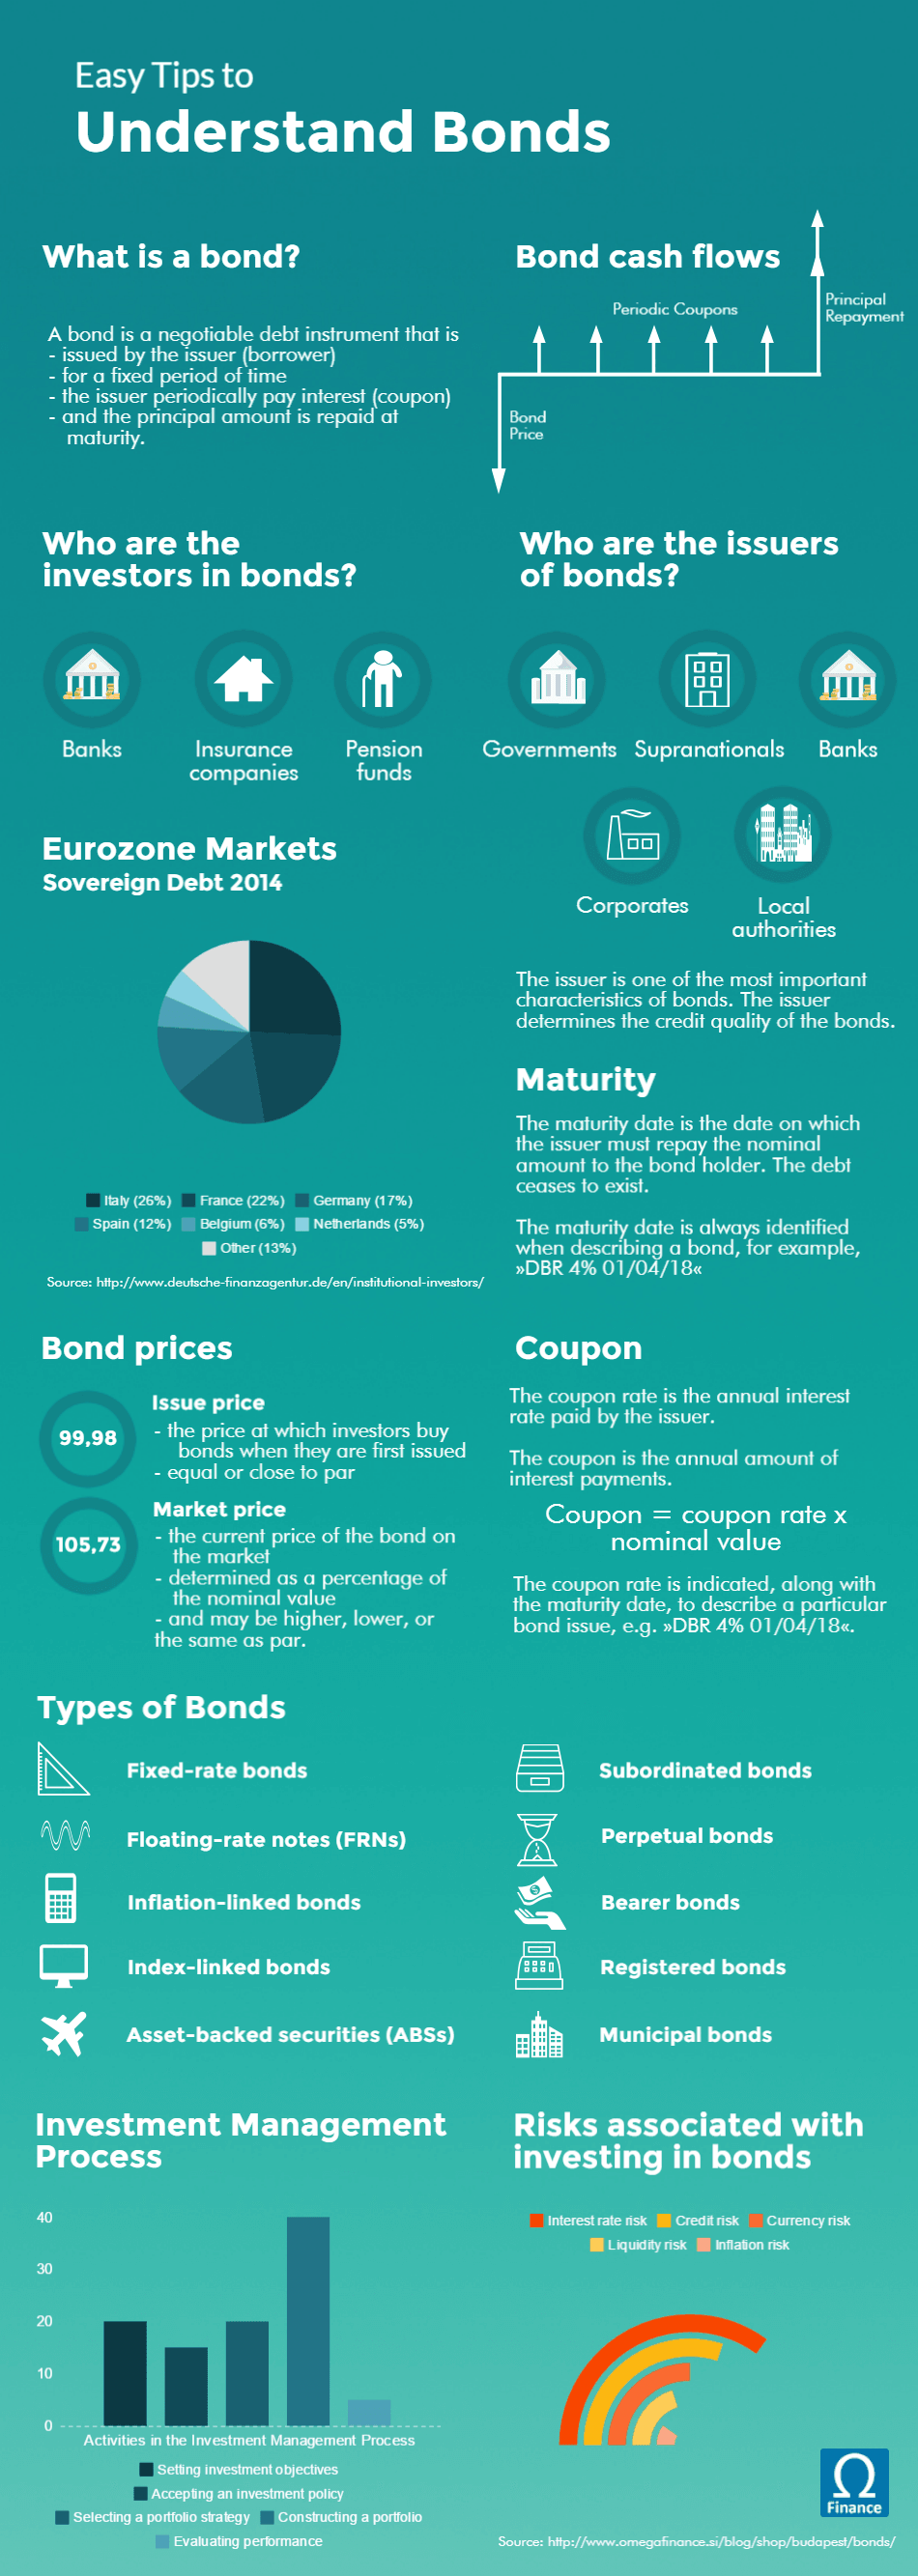 Easy Tips to Understand Bonds